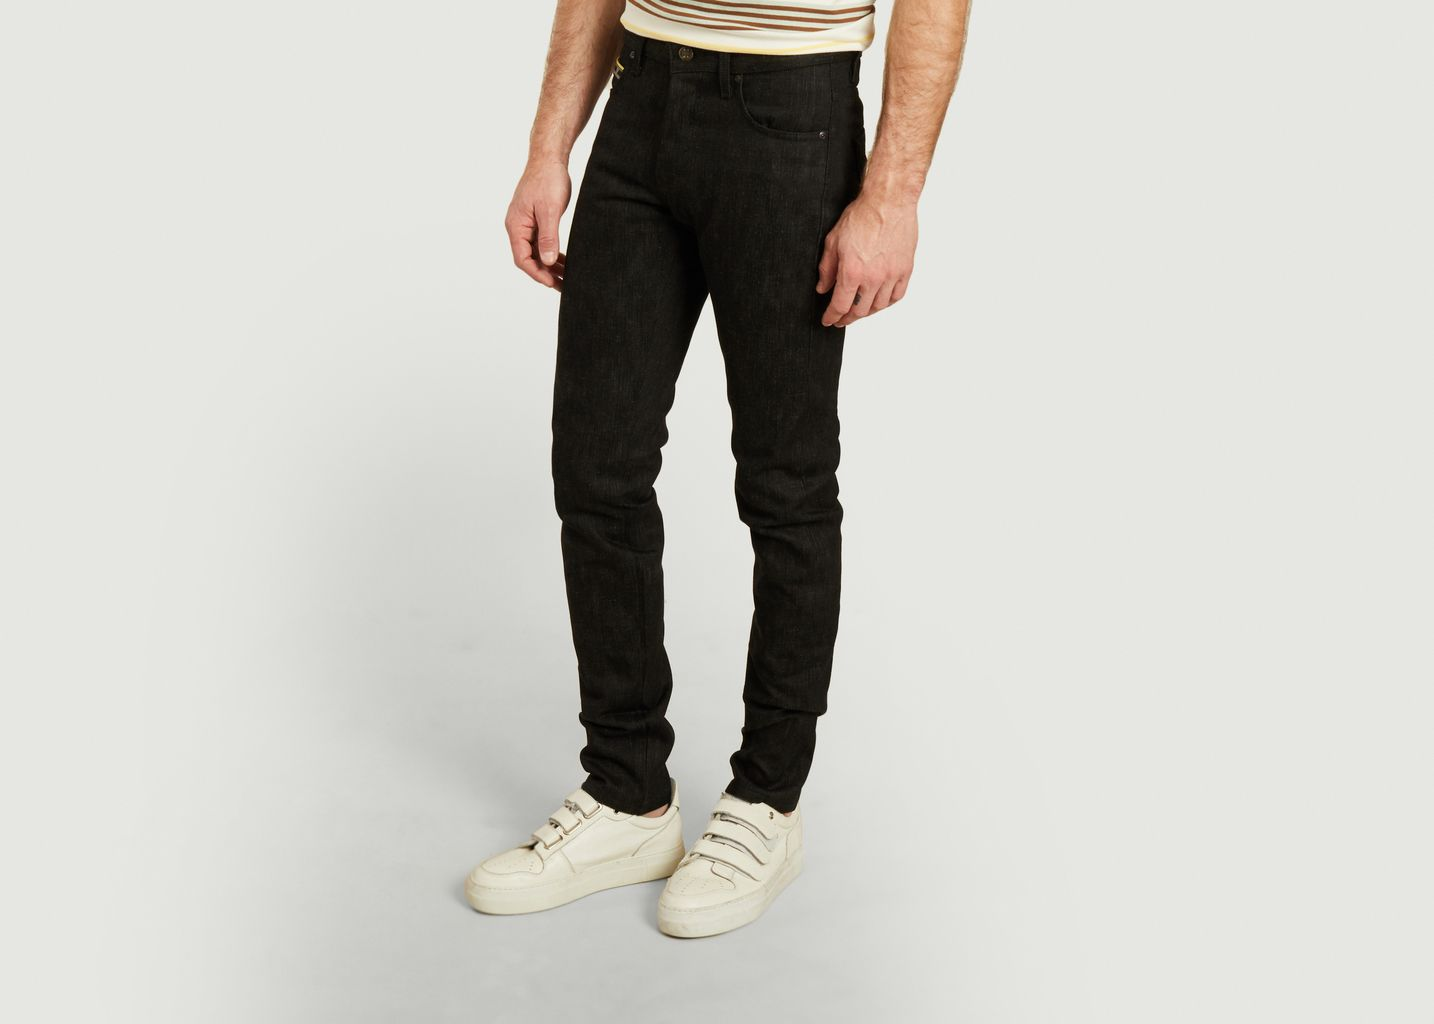 Jean Super Guy Dark Knight Selvedge x Batman - Naked and Famous